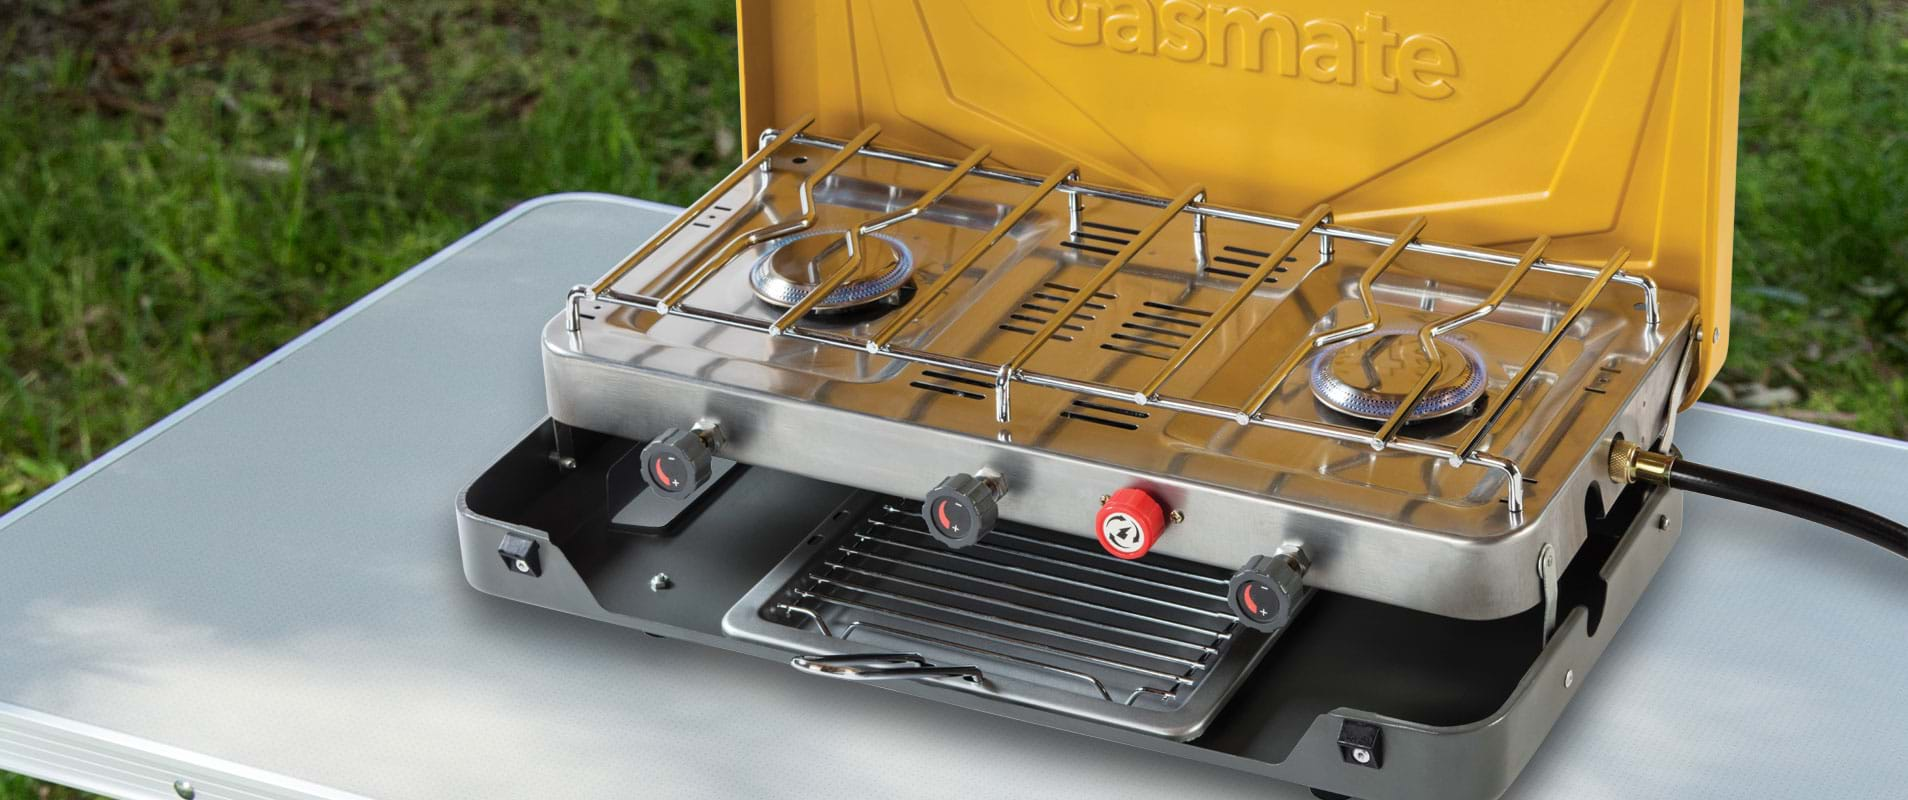 Camping stove and grill